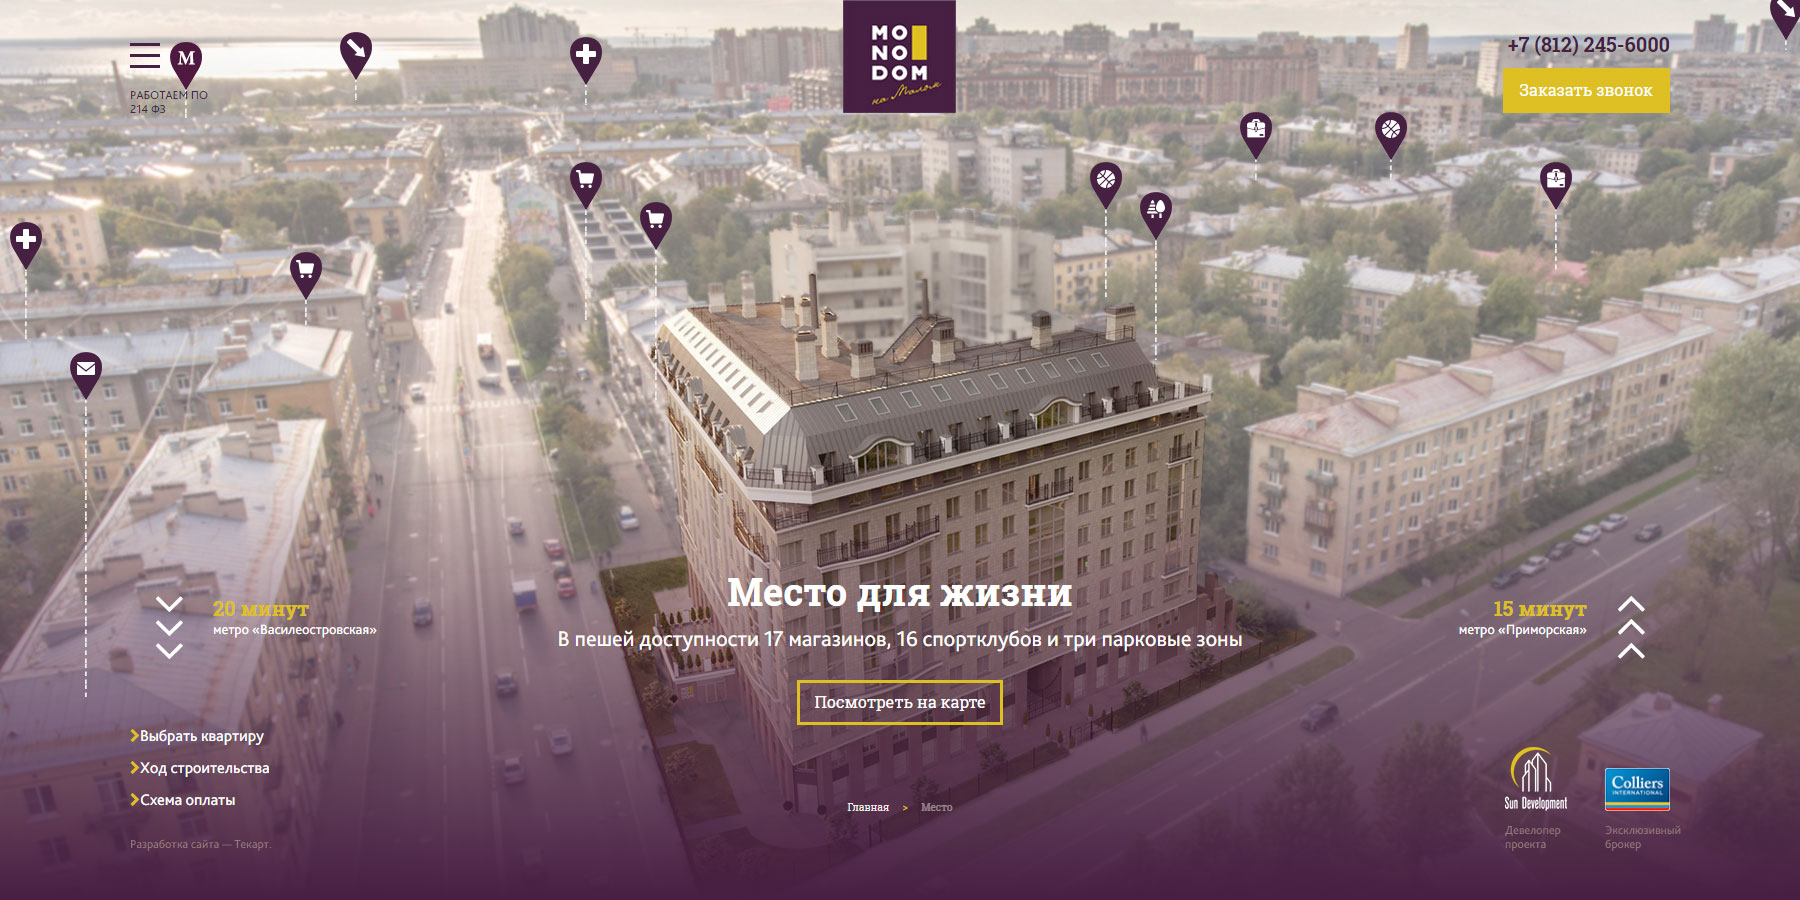 MONODOM St. Petersburg - Website of the Day